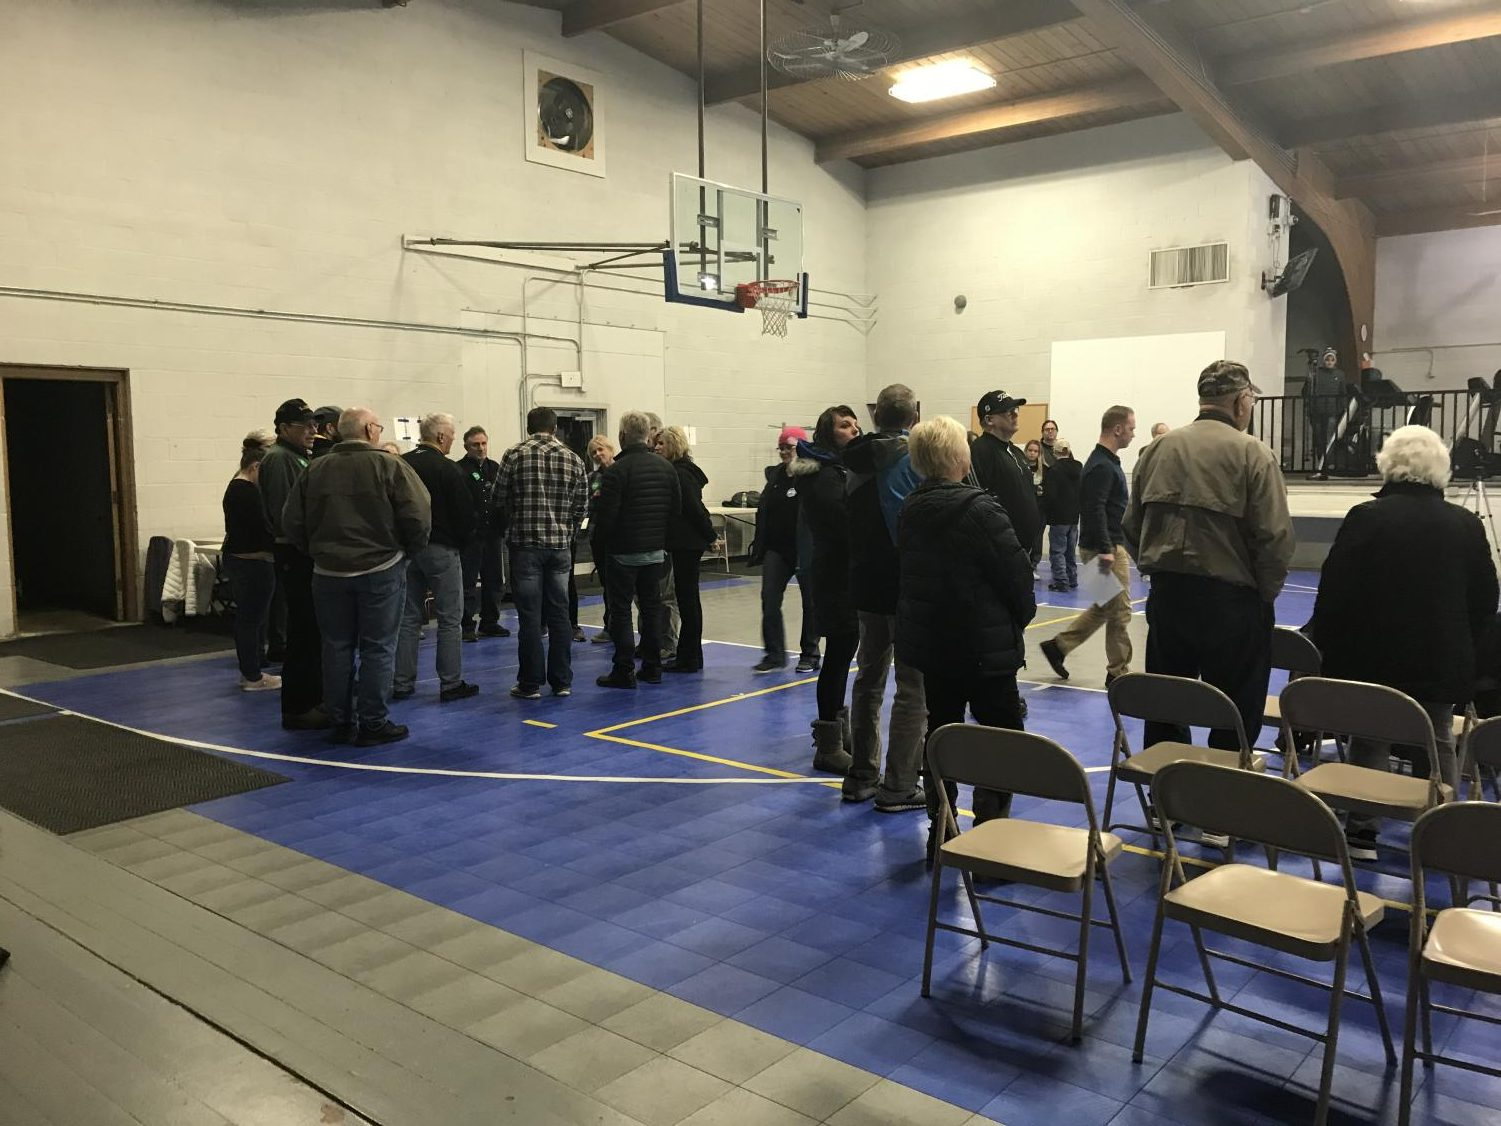 Caucus-goers display their support for a particular candidate at the Democratic Party 2020 Caucus in Larchwood, Iowa.